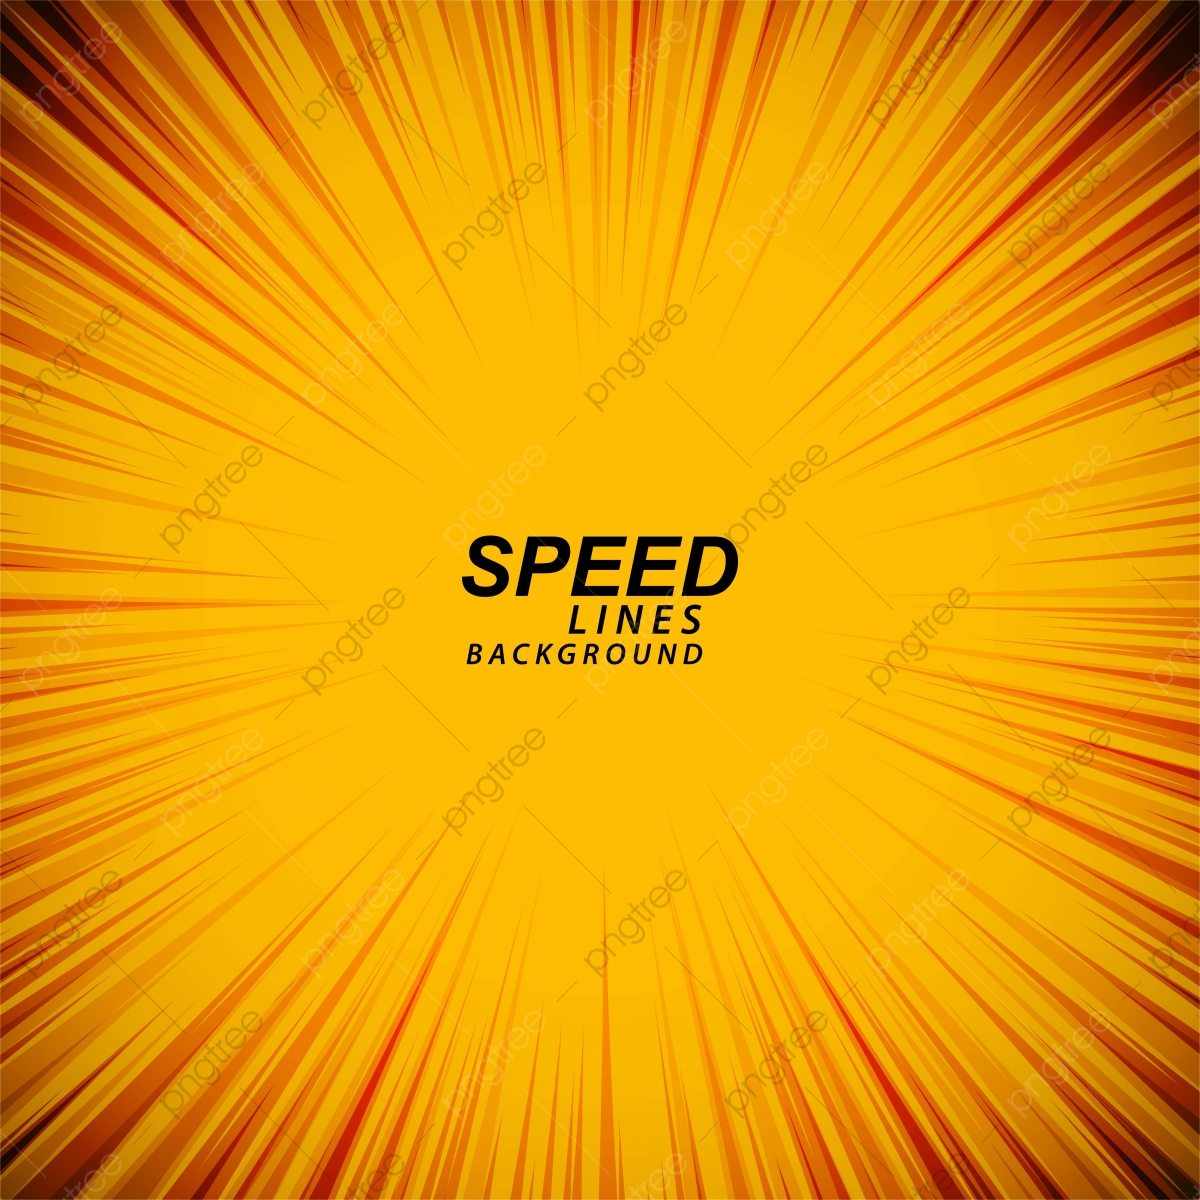 pngtree yellow ic speed zoom lines background vector png image